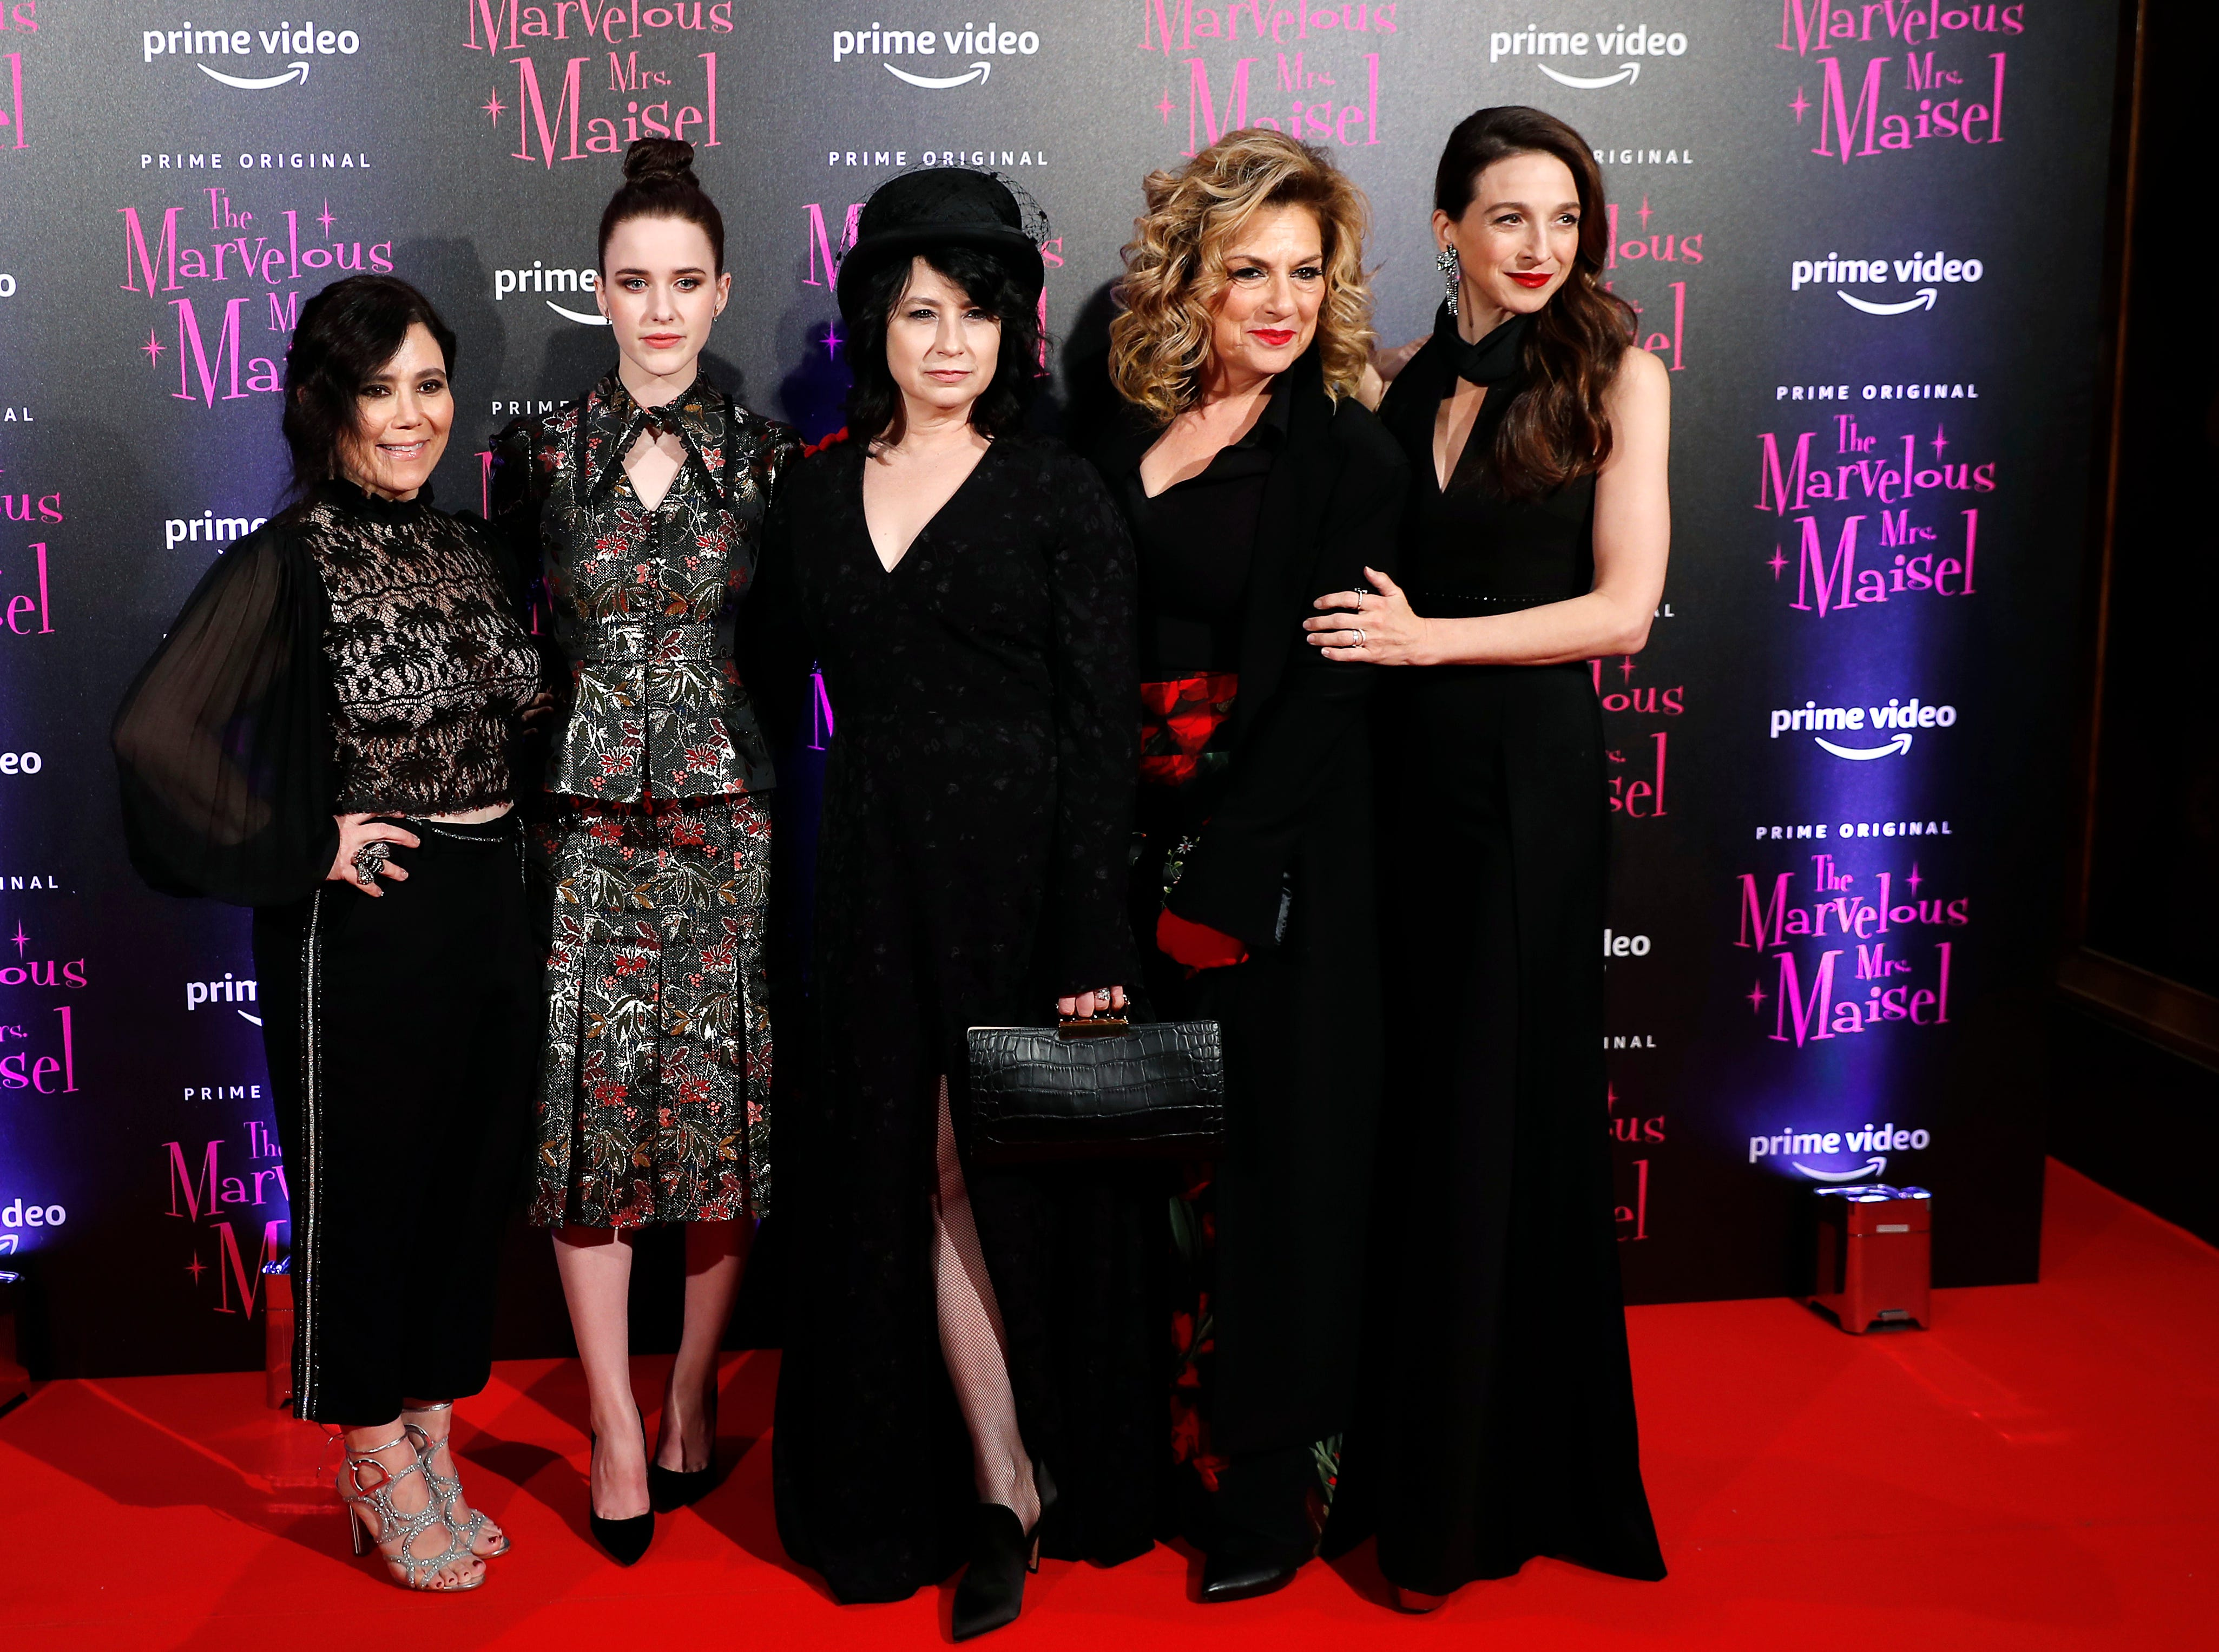 """From left: Alex Borstein, Rachel Brosnahan, Amy Sherman Palladino, Caroline Aaron and Marin Hinkle pose for photographers with Marin Hinkle, right, and actor Tony Shalhoub at the European Premiere of """"The Marvelous Mrs. Maisel"""" season 2, in Milan, Italy, Monday, Dec. 3, 2018."""